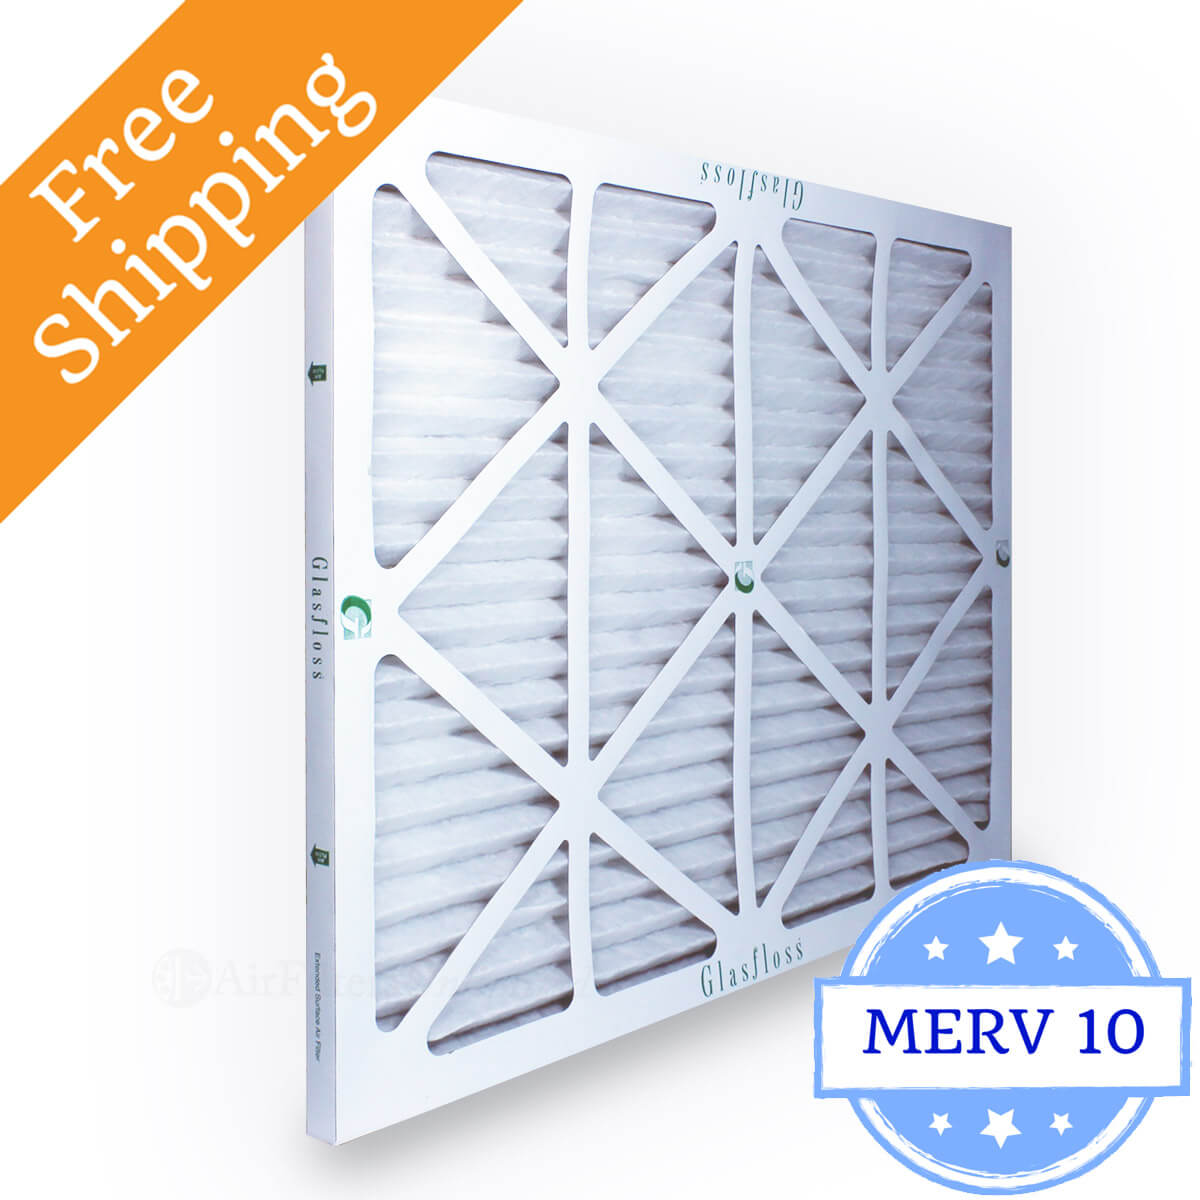 Glasfloss 16x25x1 Air Filter ZL Series